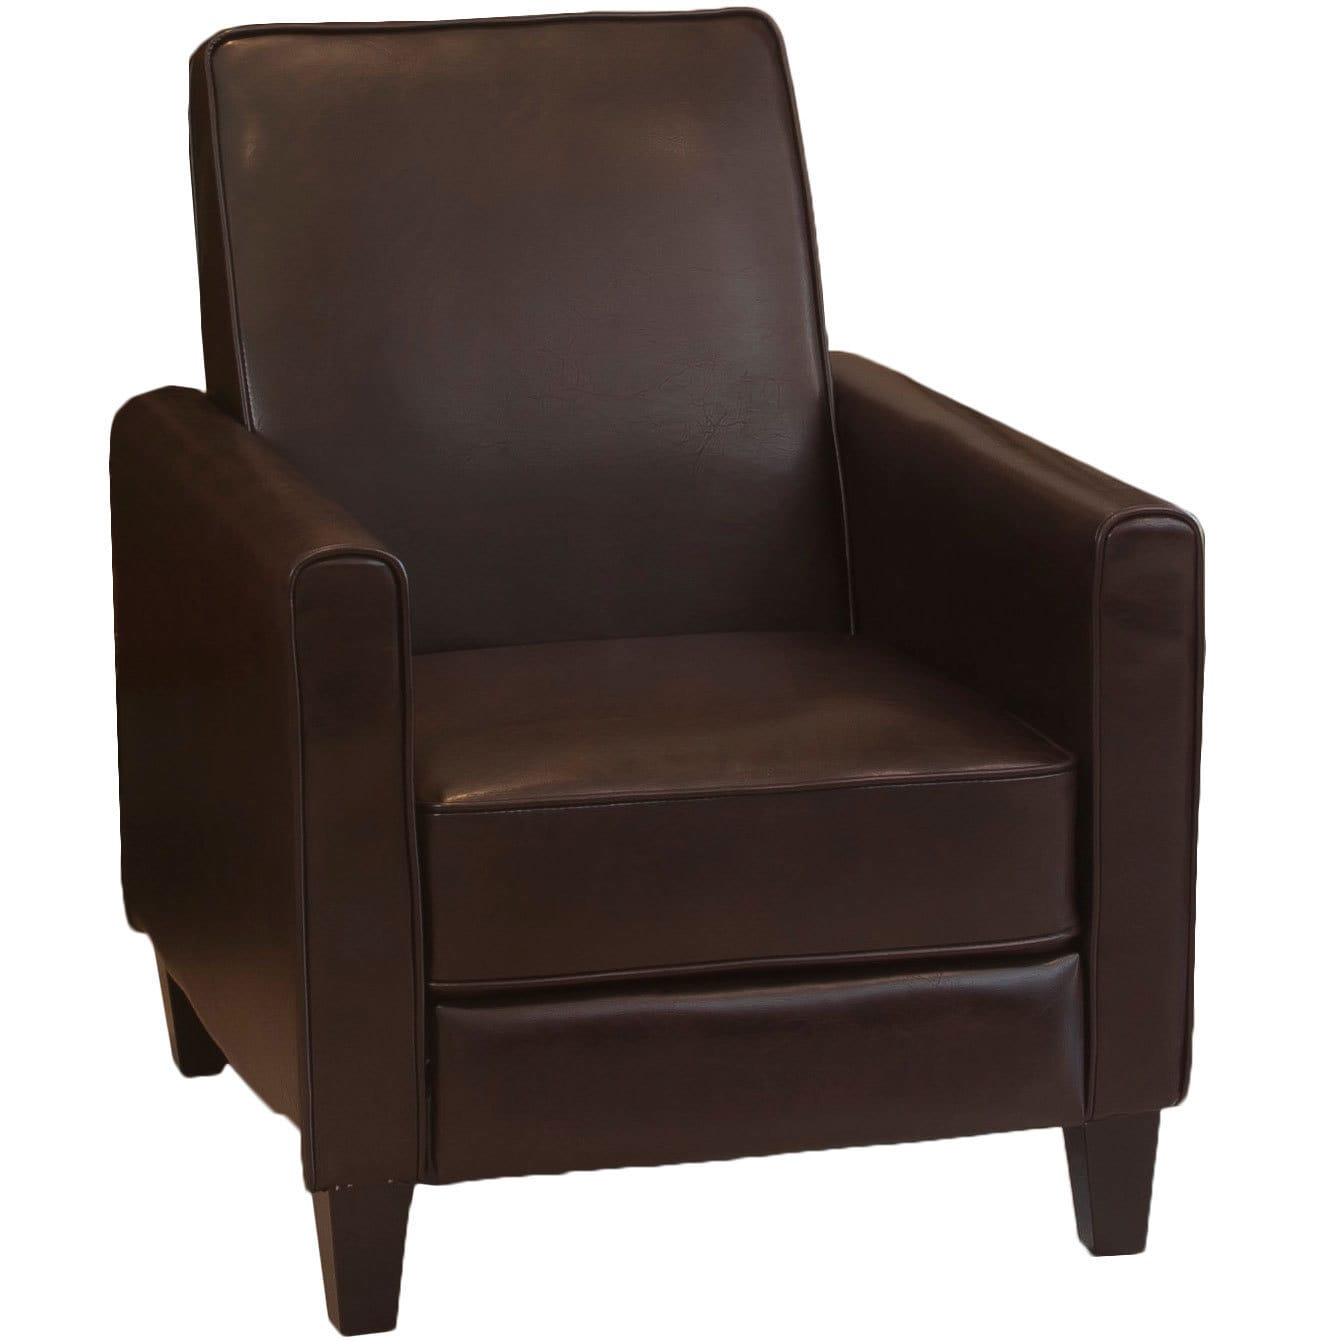 Charming Shop Darvis Brown Bonded Leather Recliner Club Chair By Christopher Knight  Home   Free Shipping Today   Overstock.com   6756900